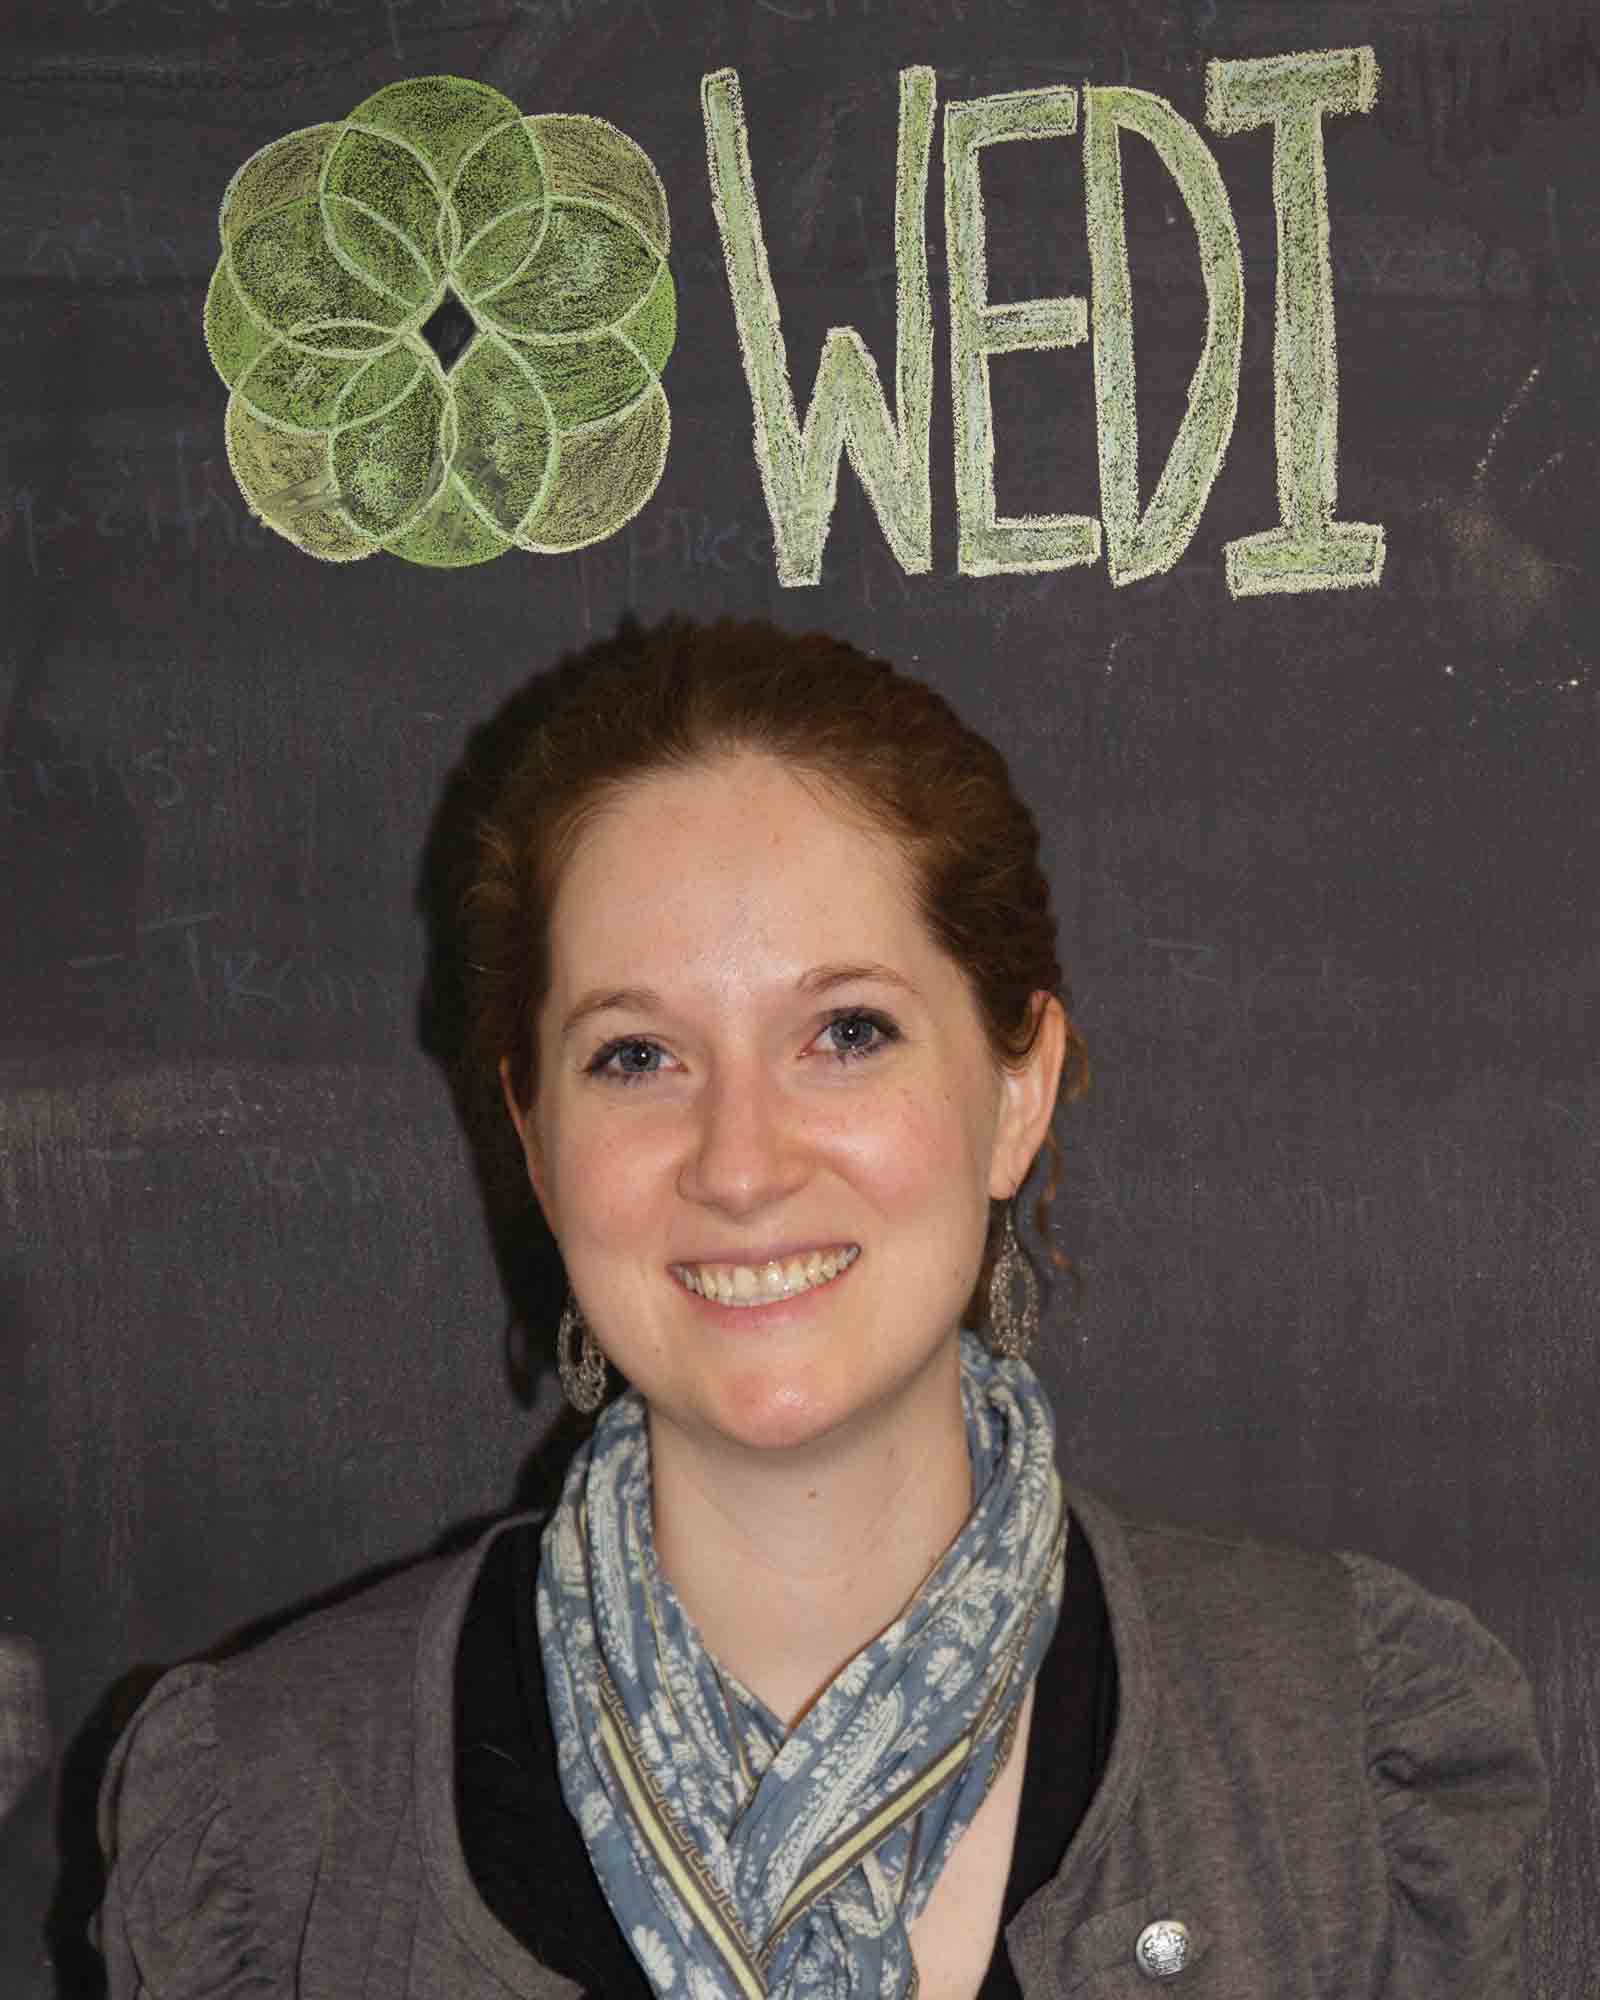 Bryana joined the WEDI team in 2017 after seven years of community development work with key organizations such as the Buffalo Region Immigrant and Refugee Roundtable,